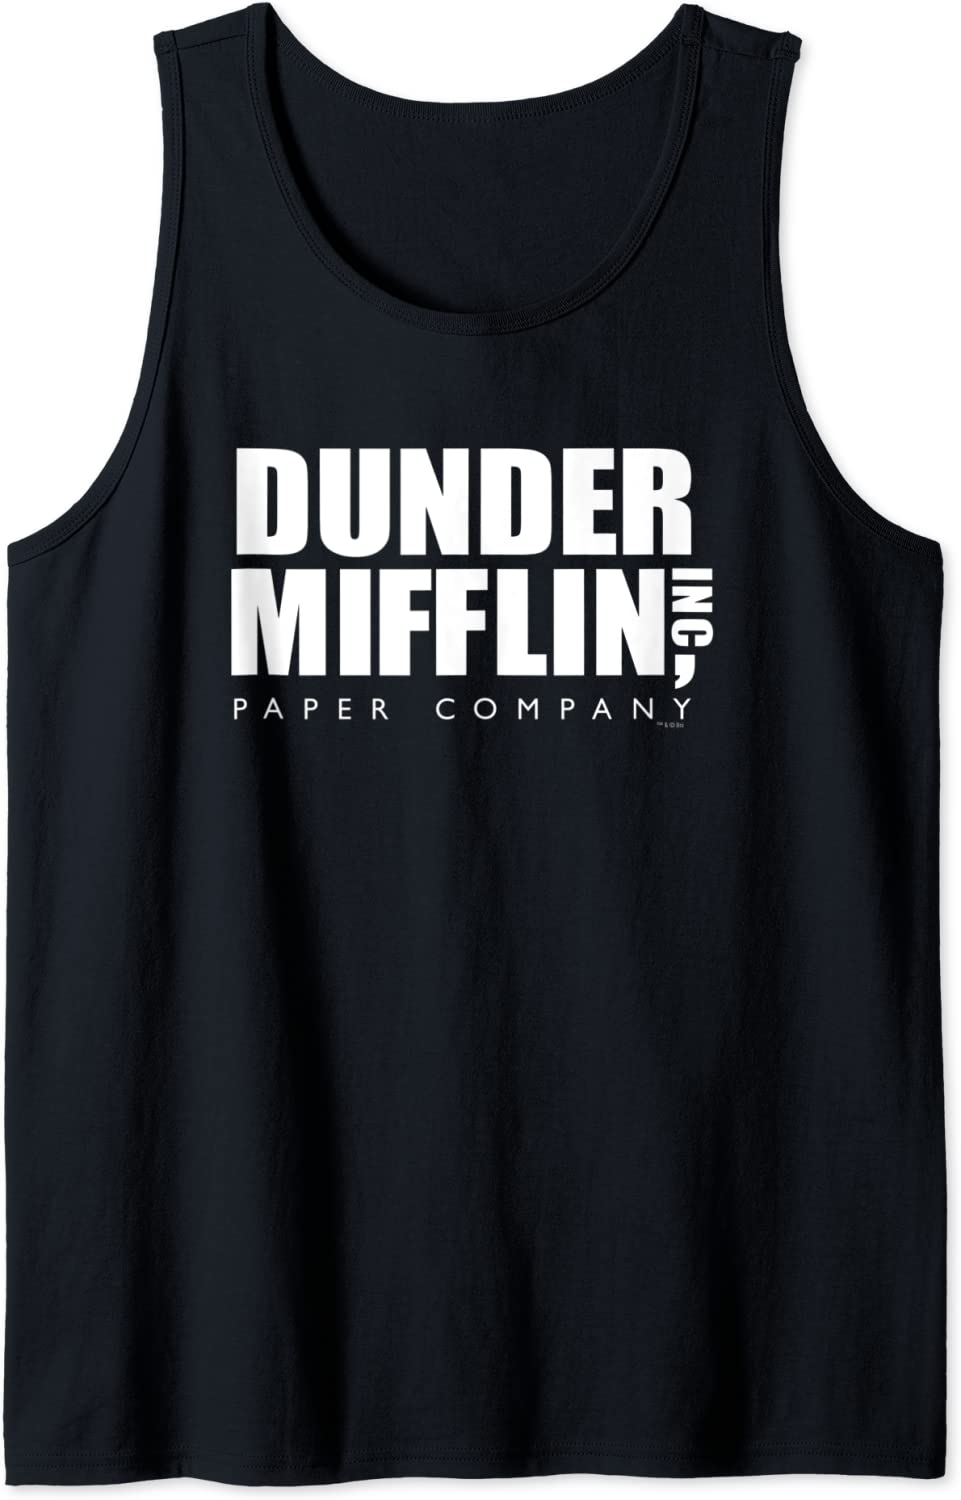 The Office Direct stock discount Dunder Discount mail order Tank Top Mifflin